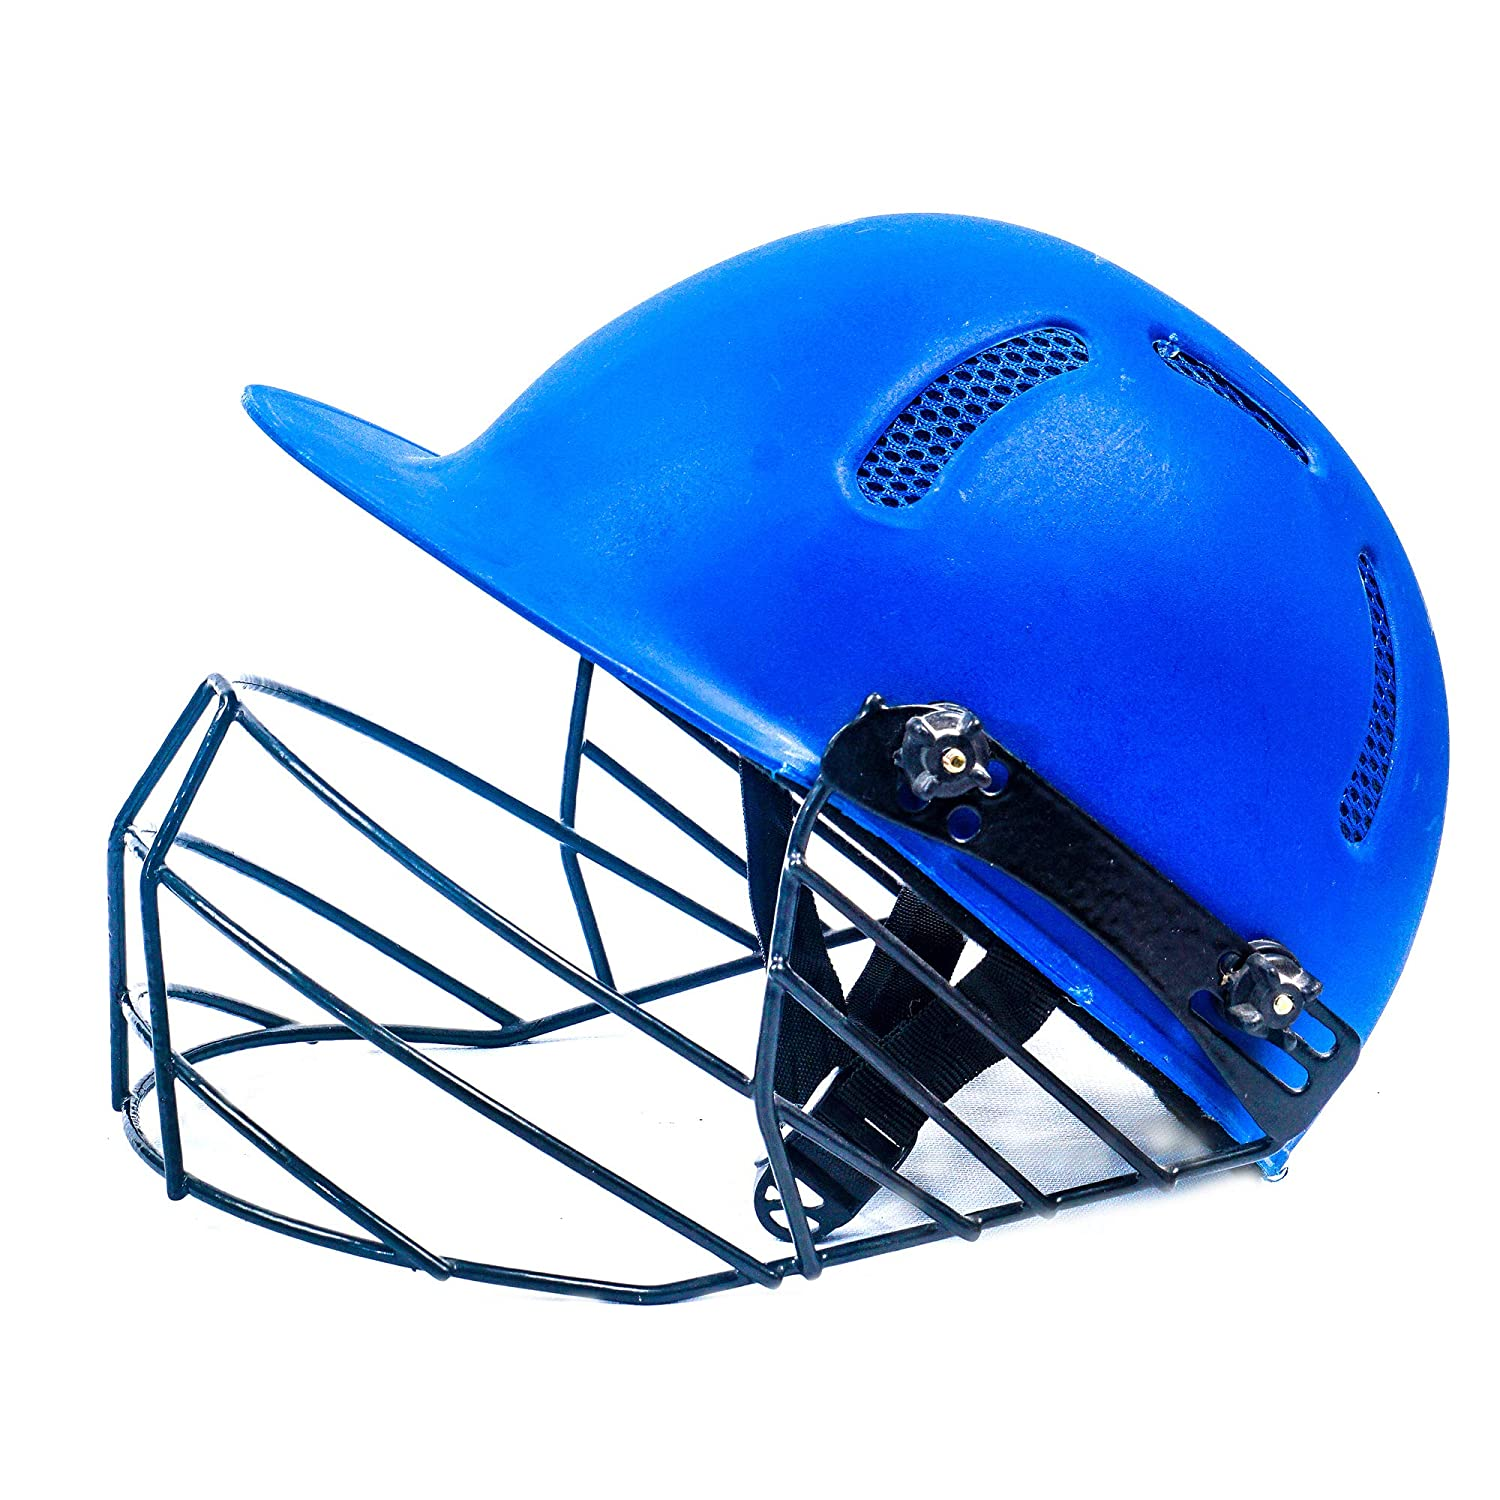 Sangakara Cricket Helmet - Reasonable Rate (Comfortable) - Top Quality